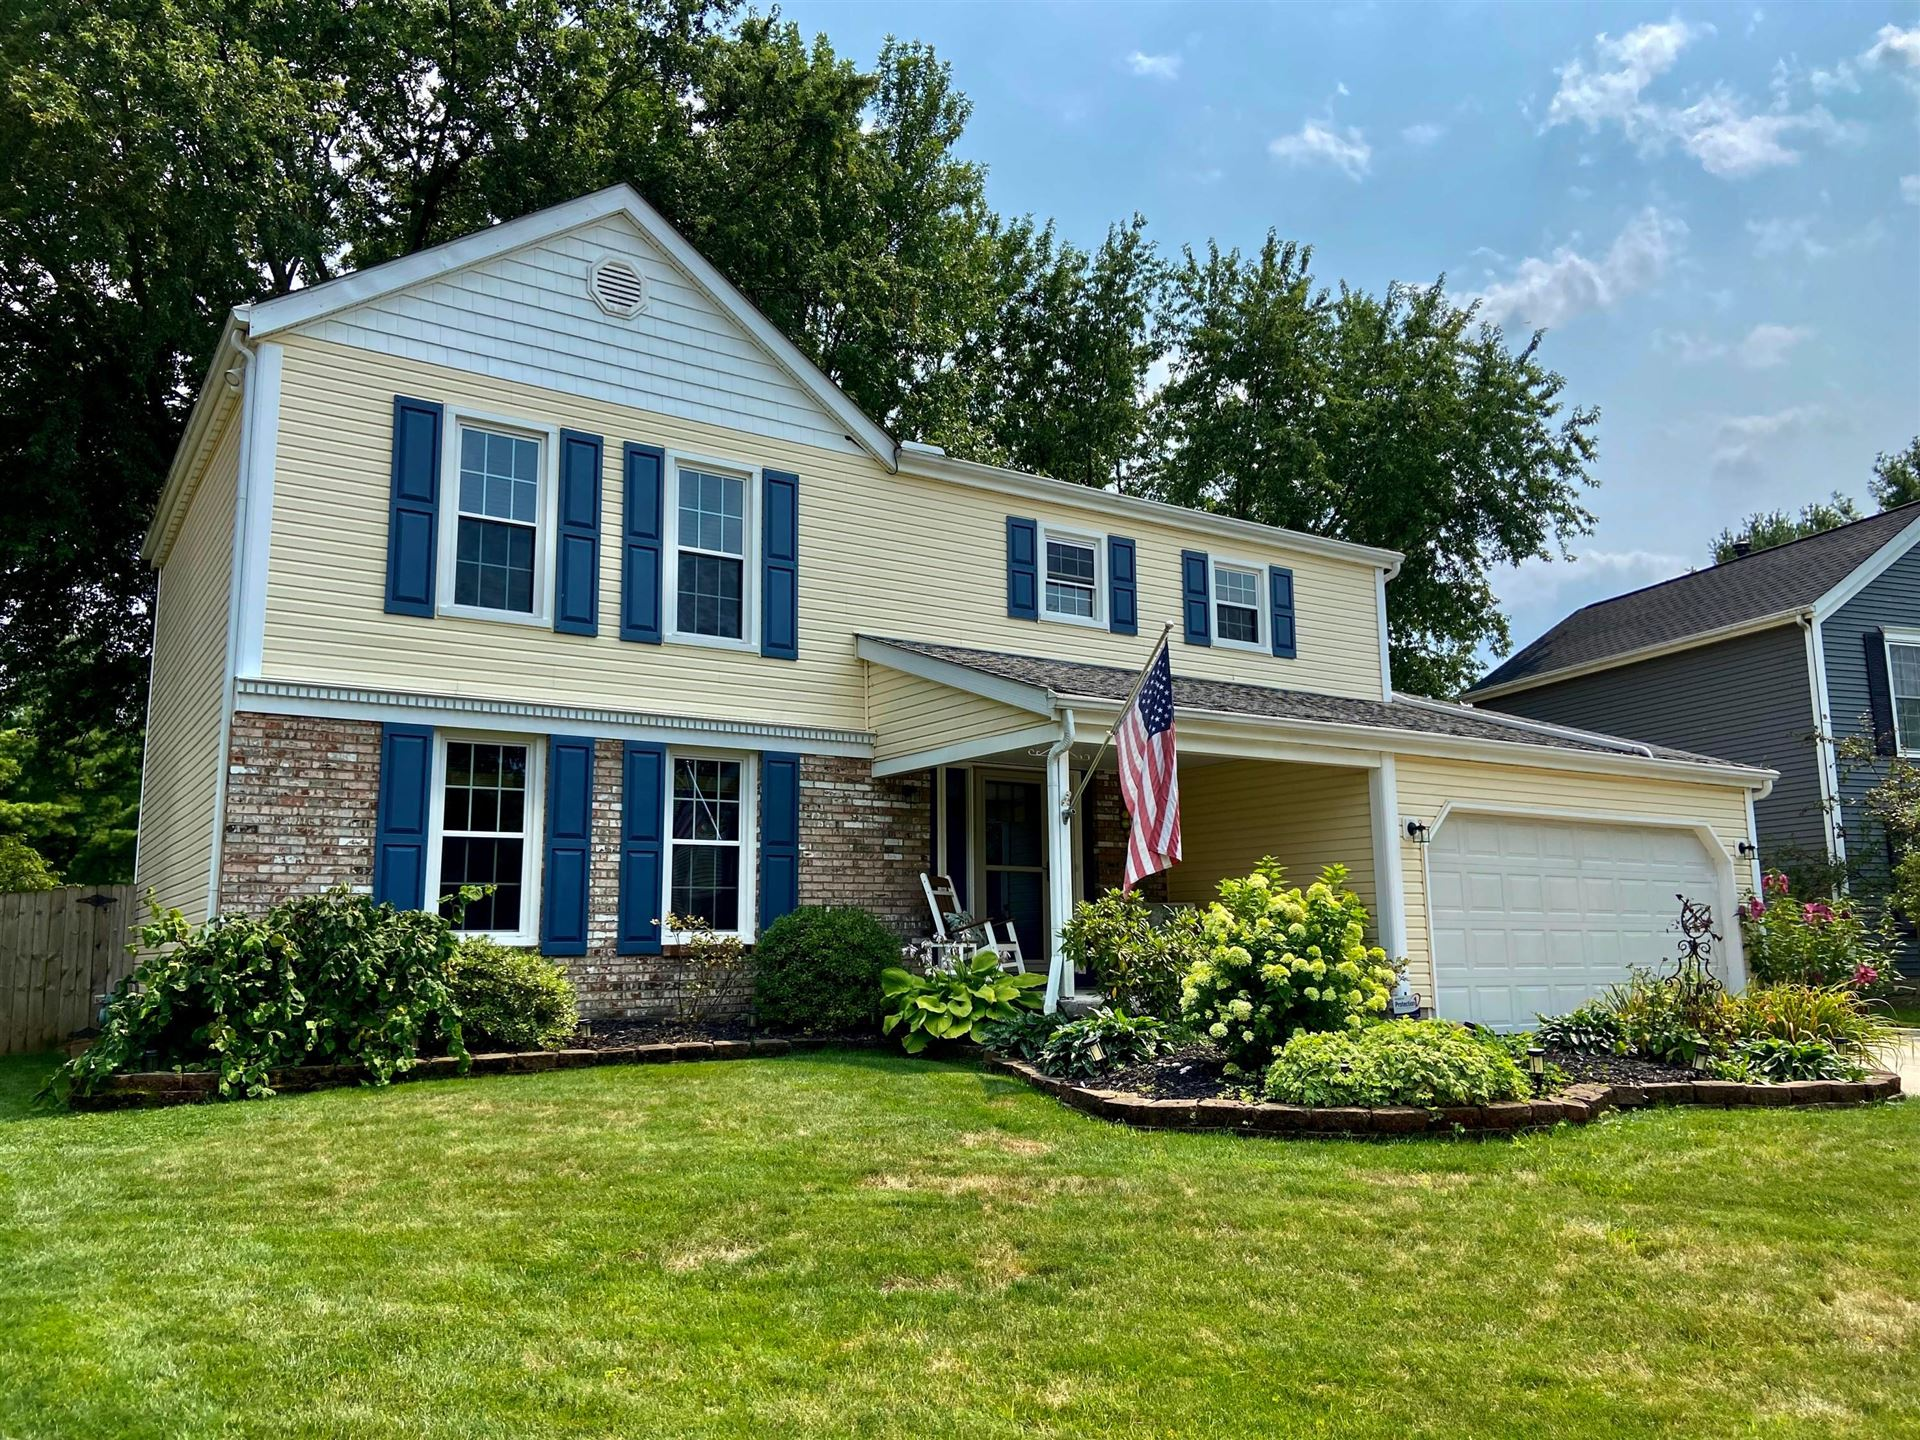 Photo of 815 Pine Post Lane, Westerville, OH 43081 (MLS # 221028988)